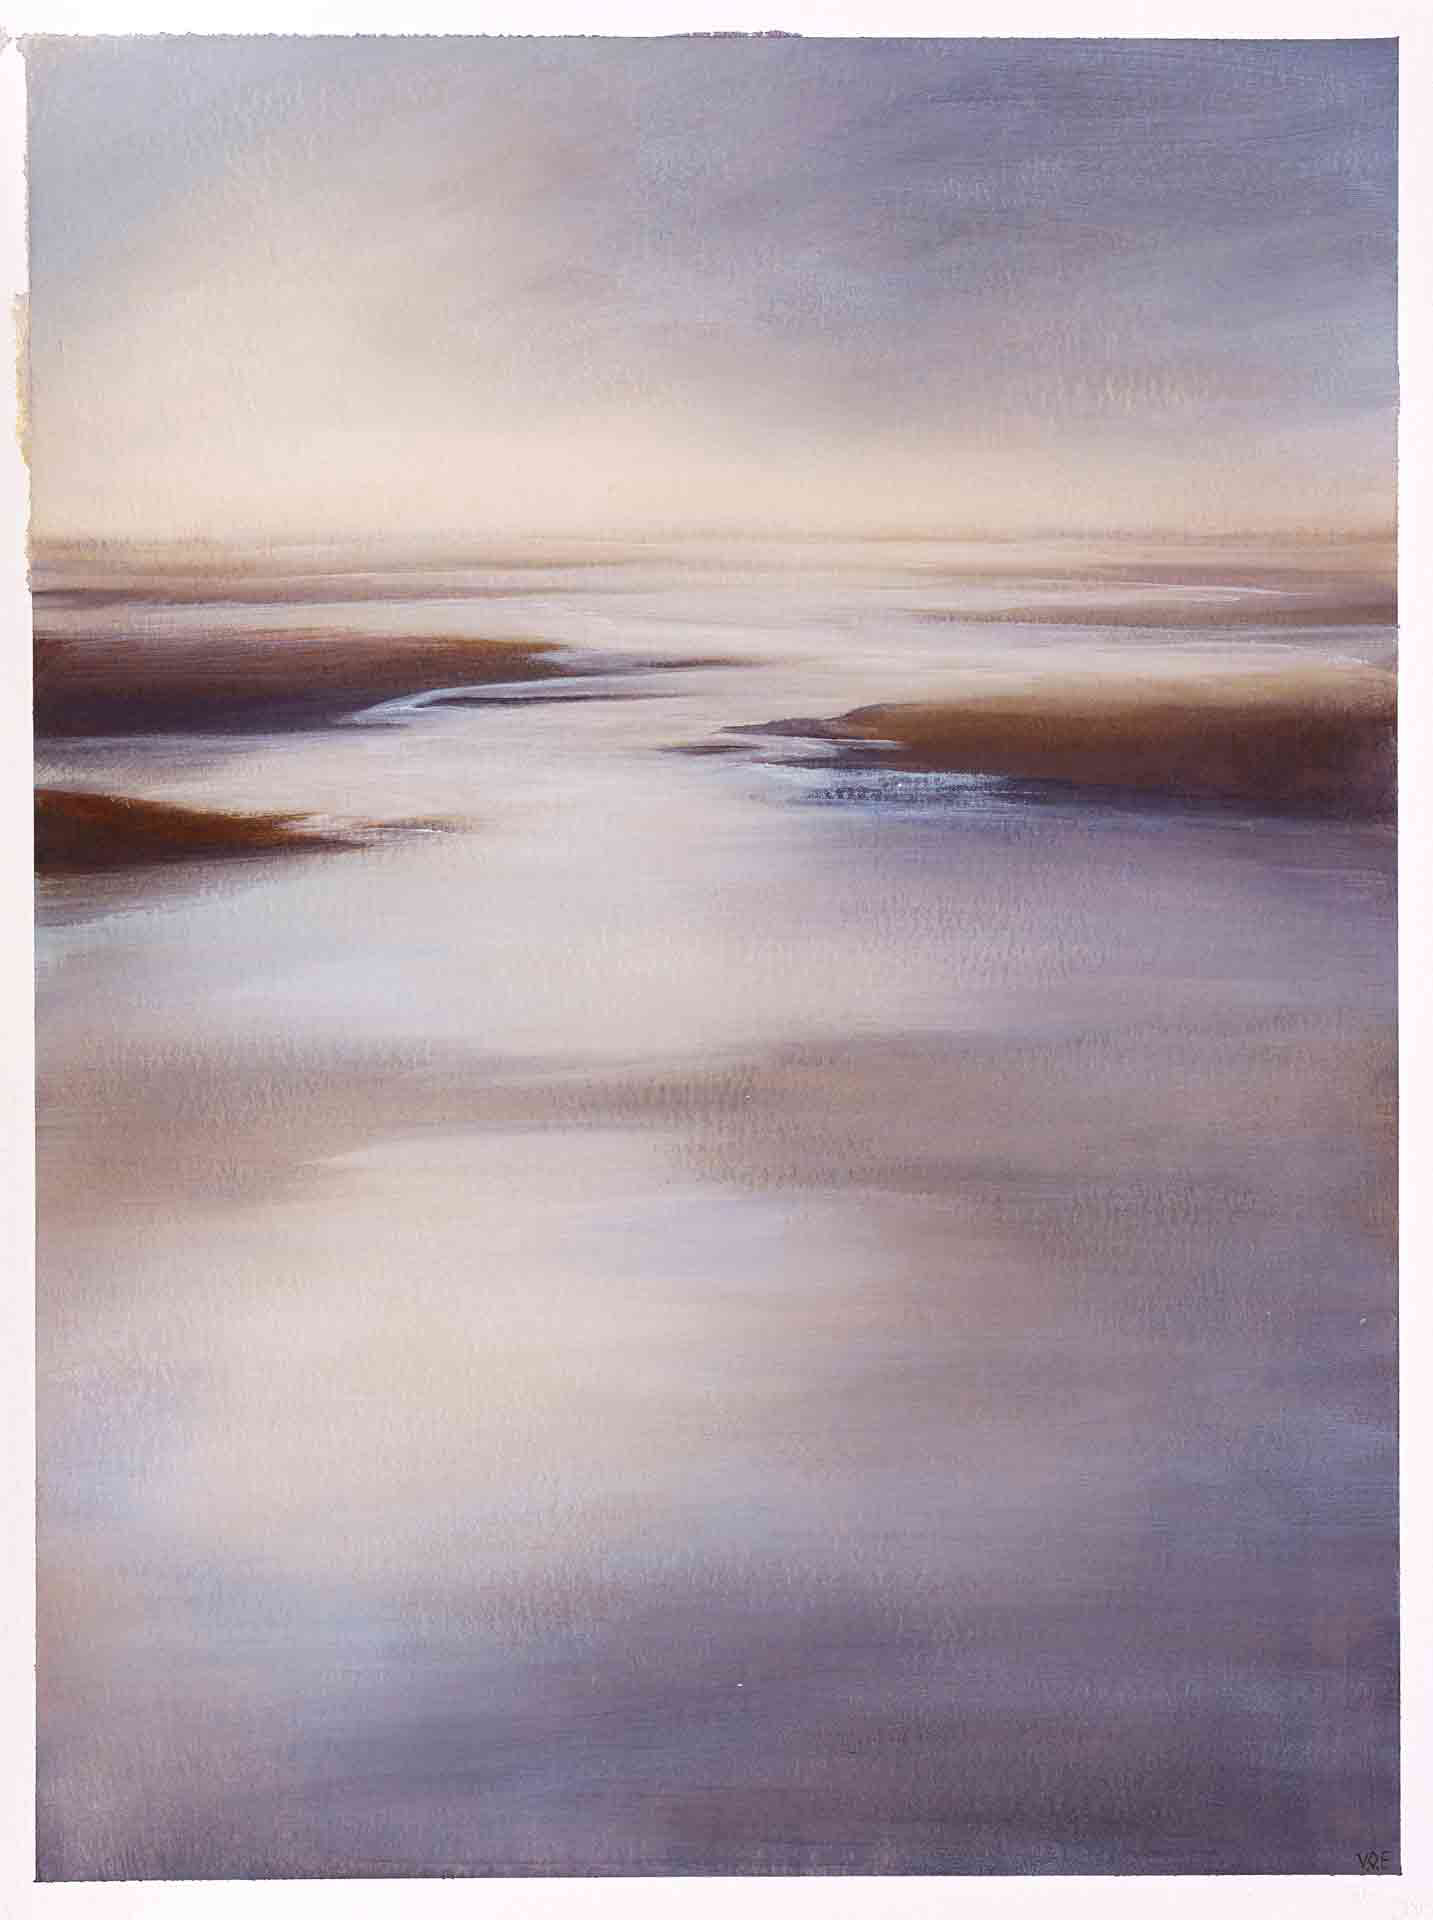 Low Tide, Traigh Leathon, North Uist. Contemporary Landscape painting by Victoria Orr Ewing